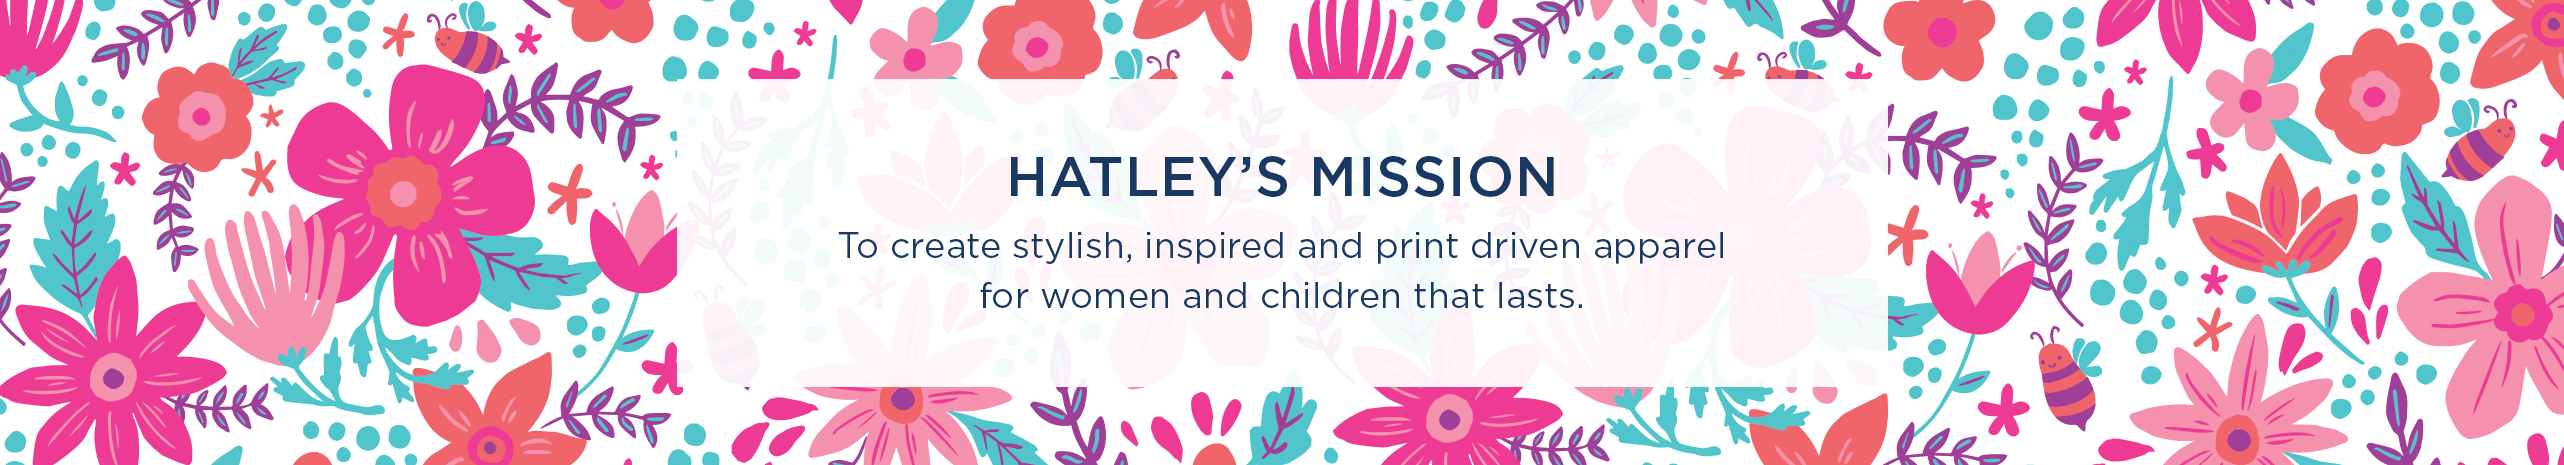 Hatley's Mission